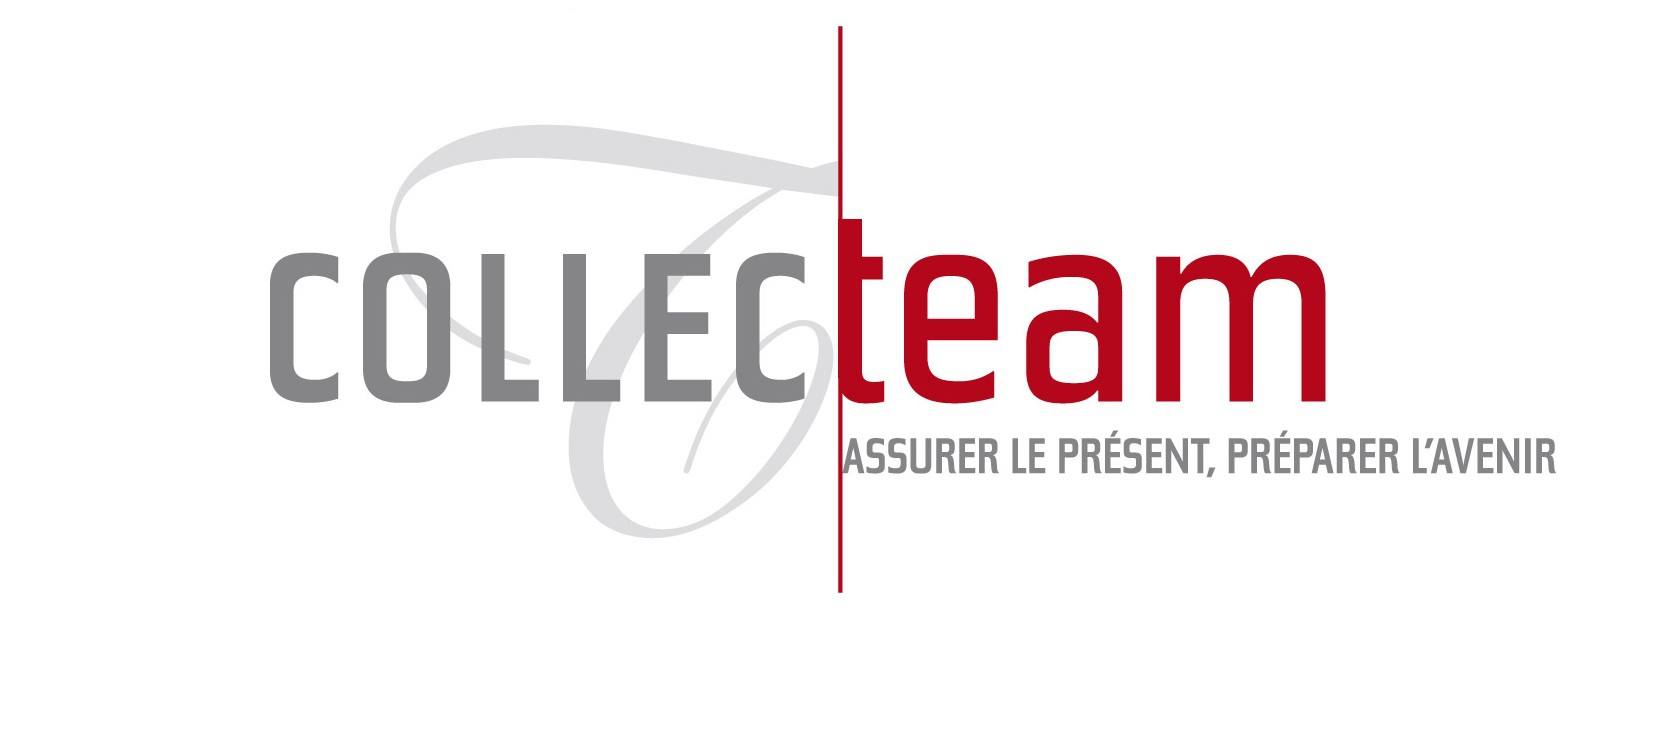 Collecteam2